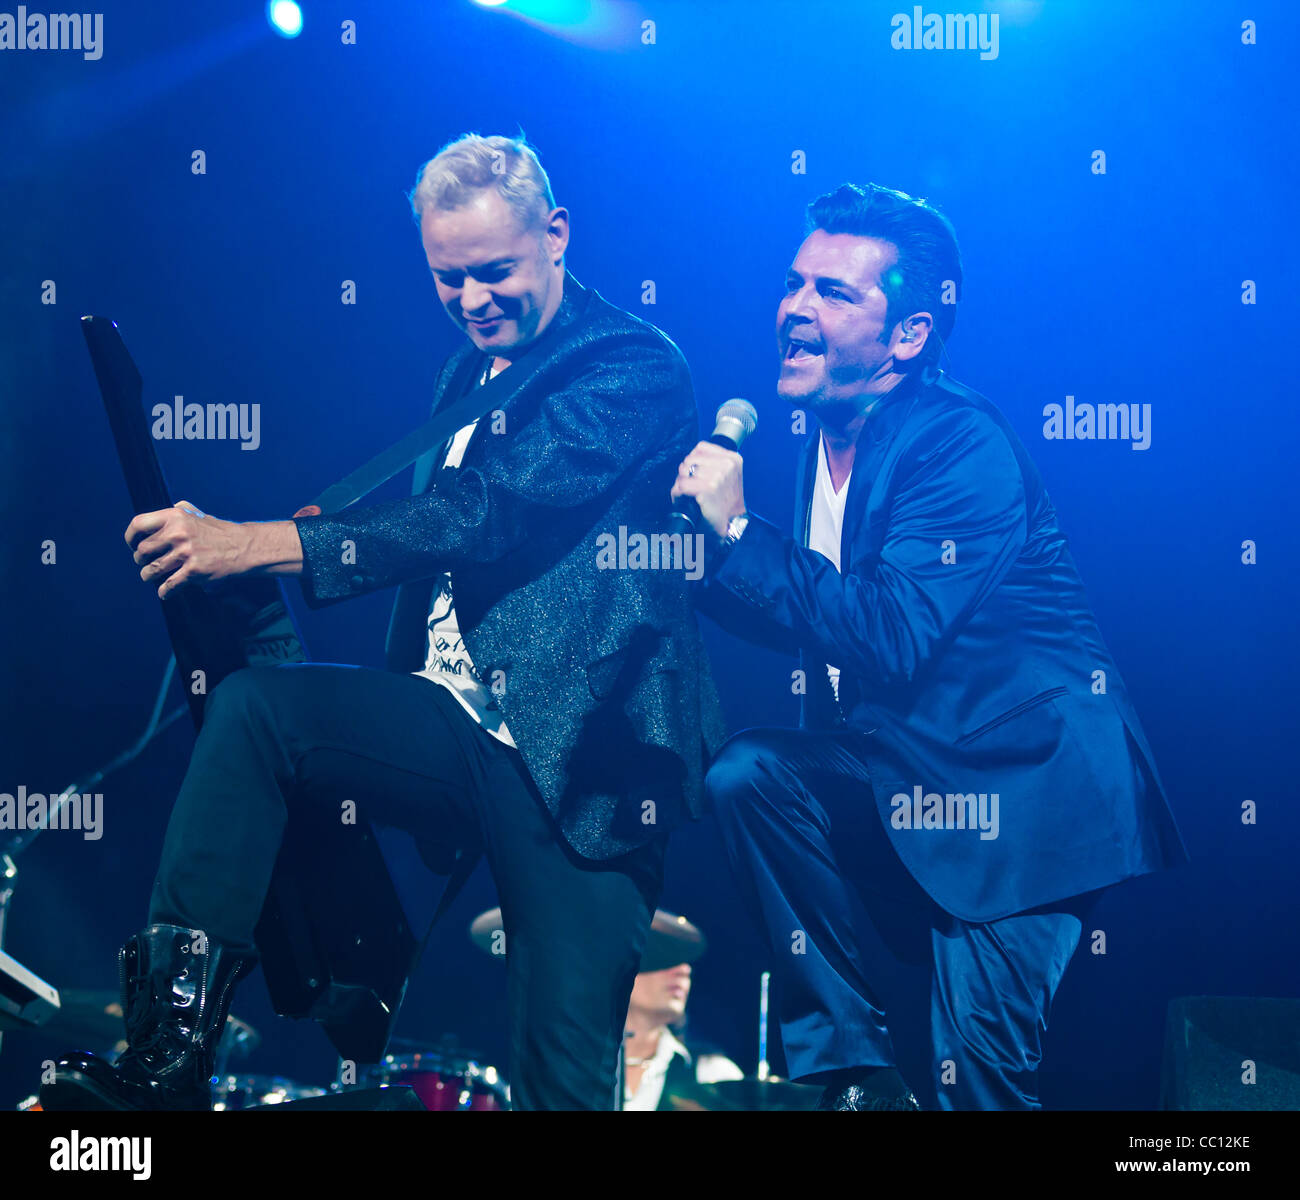 Singer Thomas Anders (r) and songwriter, producer Uwe Fahrenkrog-Petersen (l) perform at Sixday-Nights Zürich - Stock Image